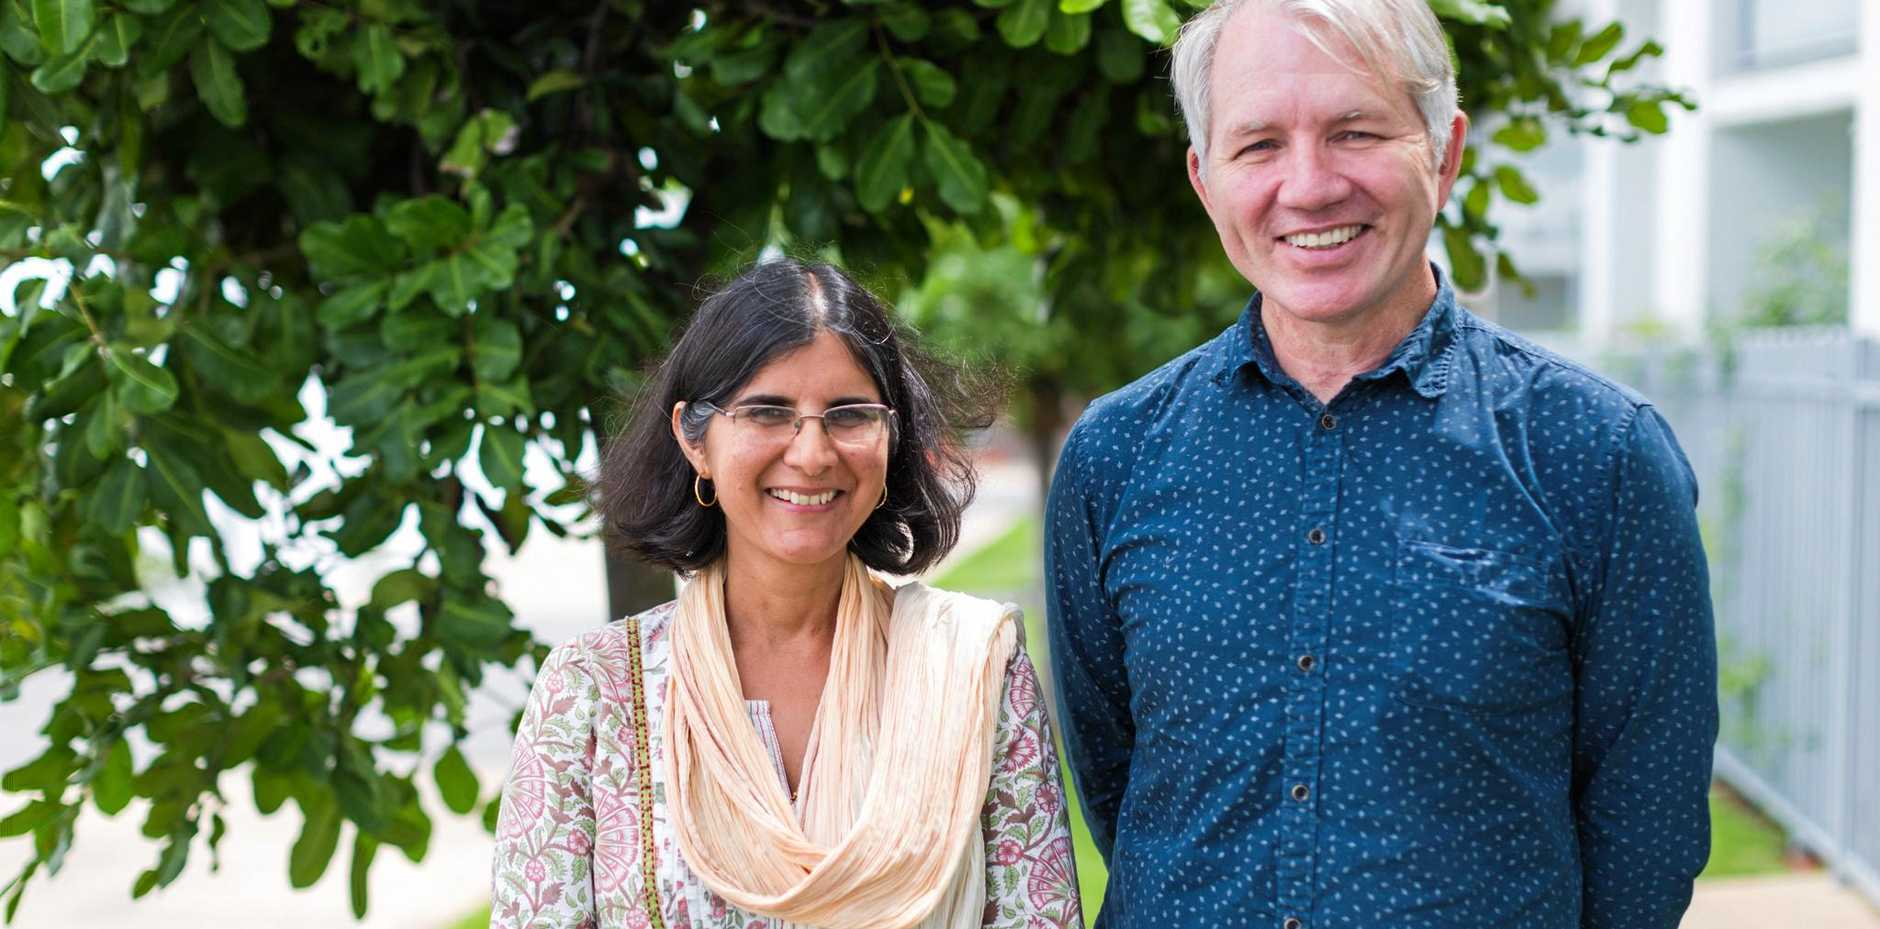 Clinical Associate Professor Rashmi Sharma OAM, discussed mentoring new doctors wanting to specialise in general practice with Alstonville's Dr Tony Lembke, at a seminar in Ballina.